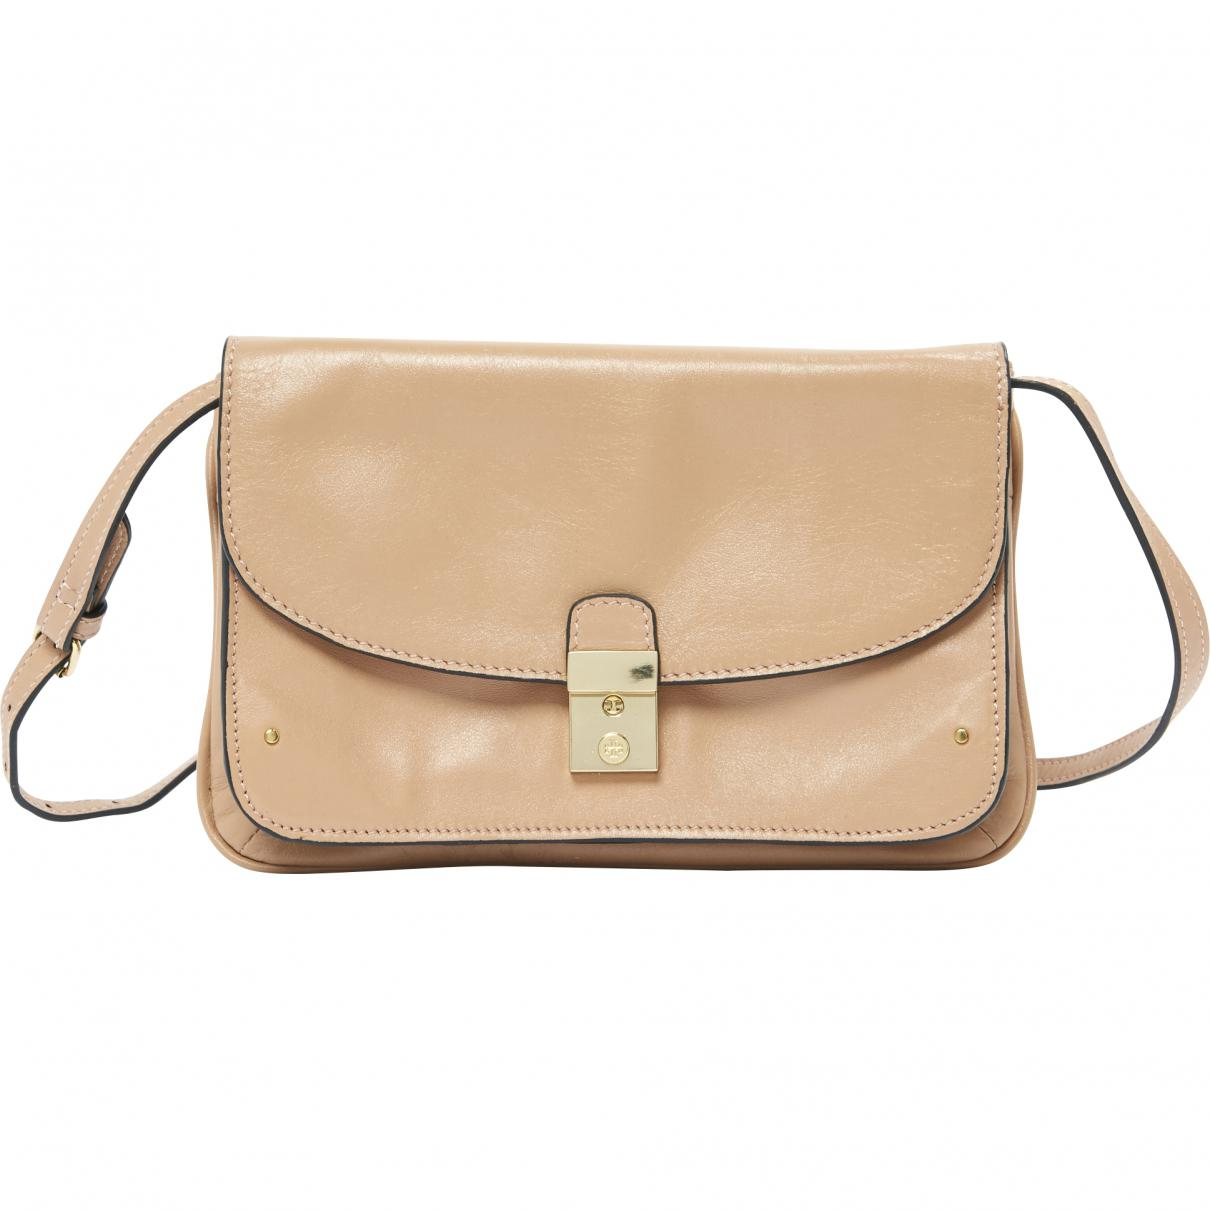 Tory Burch Pre-owned - Leather crossbody bag VQ5KKH